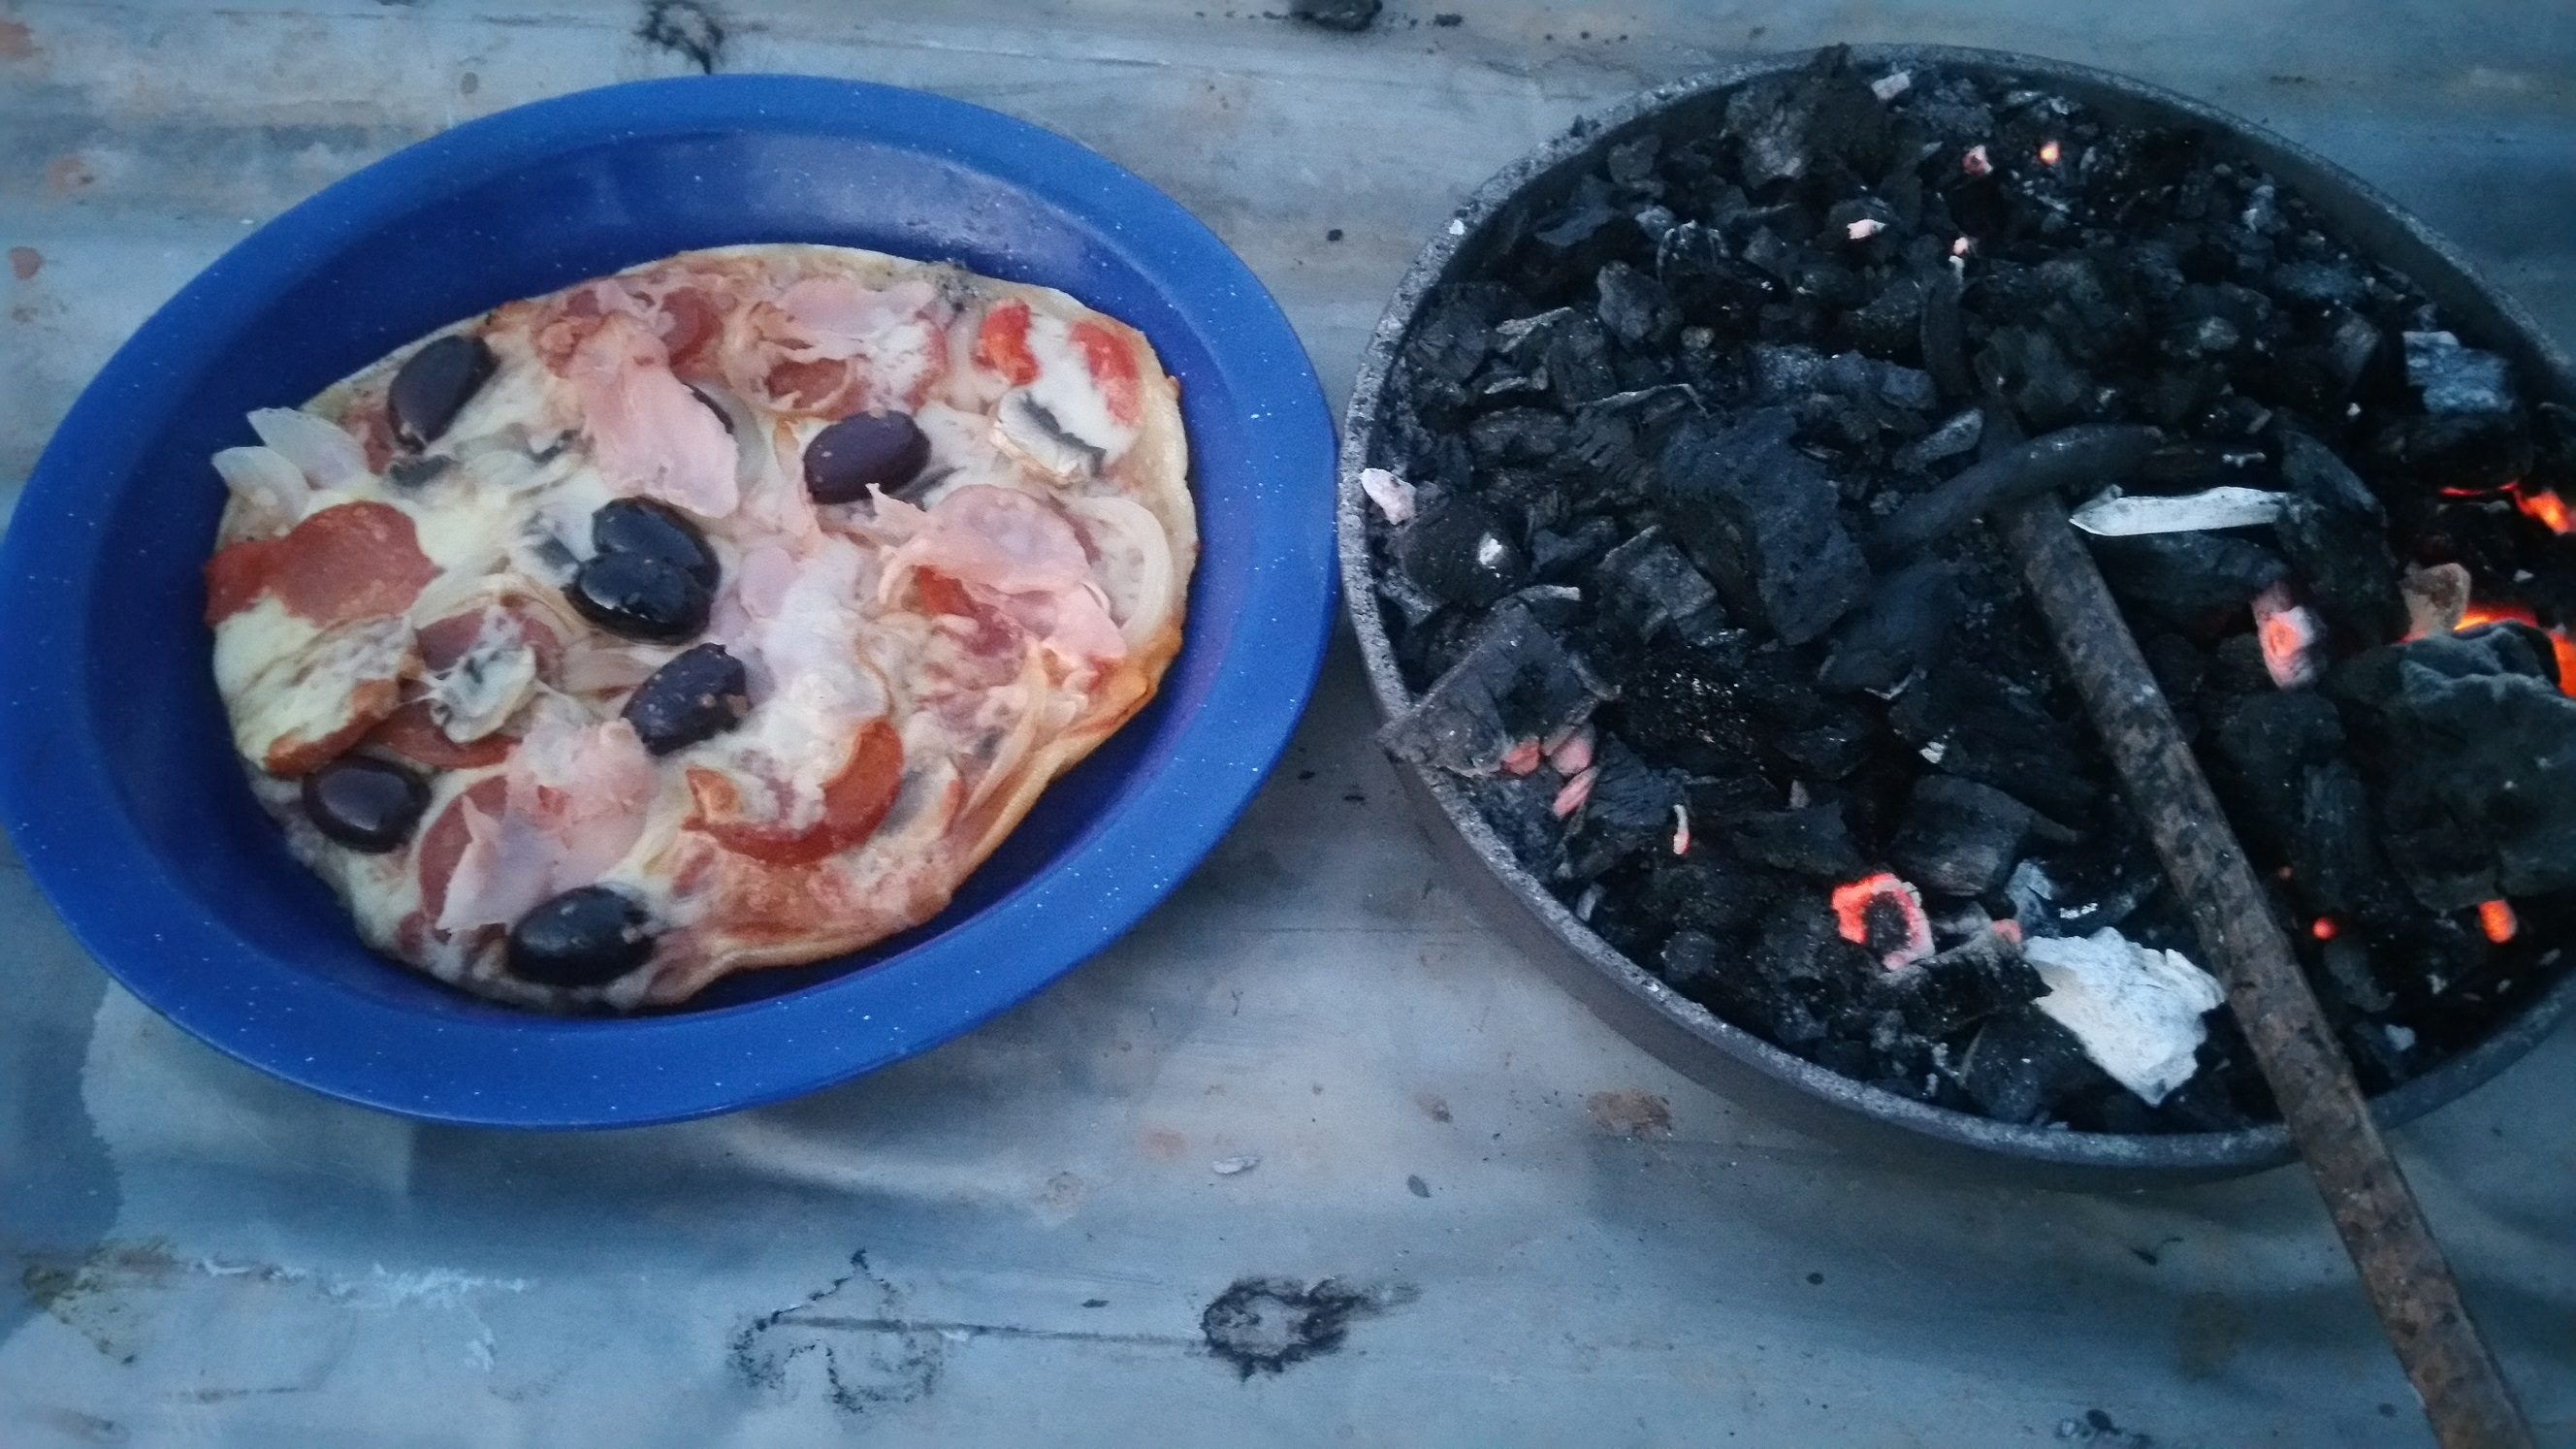 Camp oven pizza 2.jpg